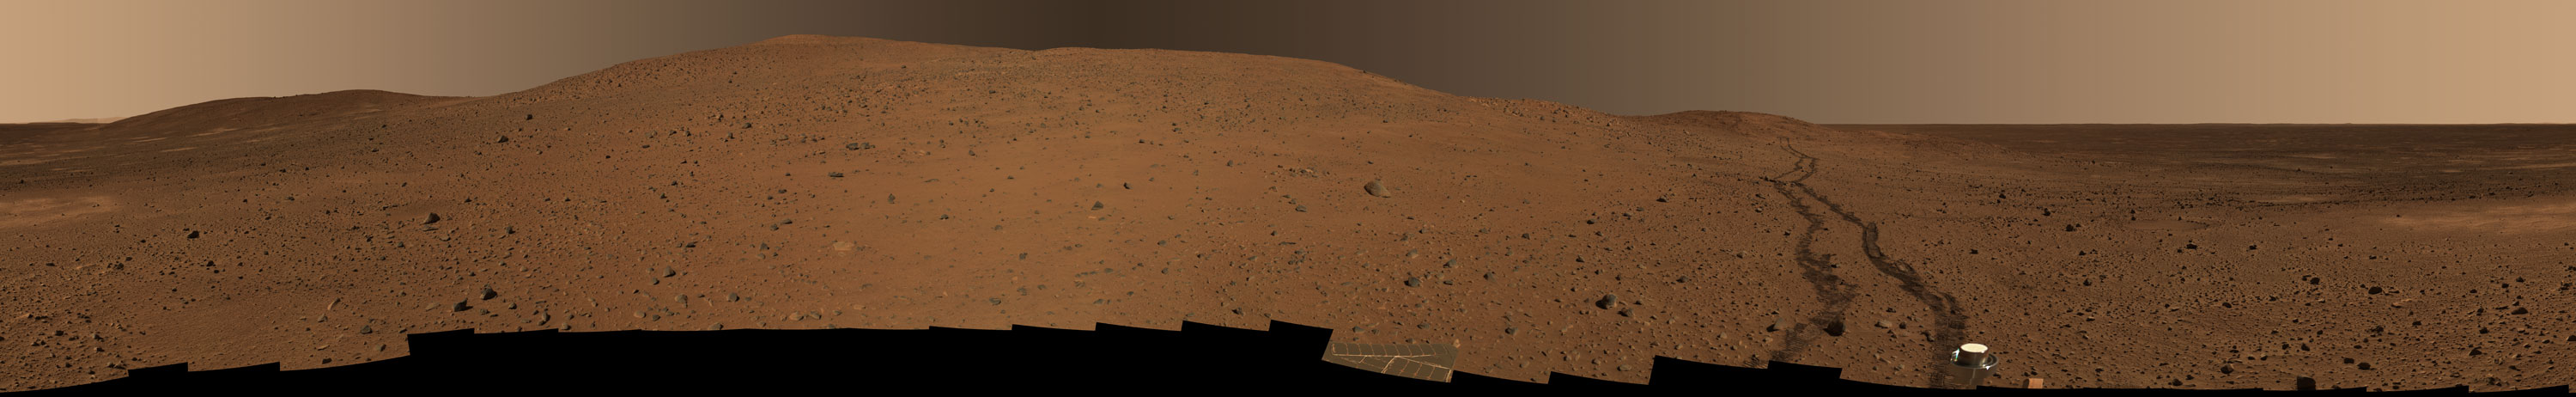 This sweeping color panorama shows a reddish-brown hill in the middle flanked by smaller hills on the right and left and the flat floor of Gusev Crater on the right. Two-thirds of the way across the image from the left, a pair of dark brown rover tracks meanders from the distant flank of the central hill toward the lower front edge of the scene.